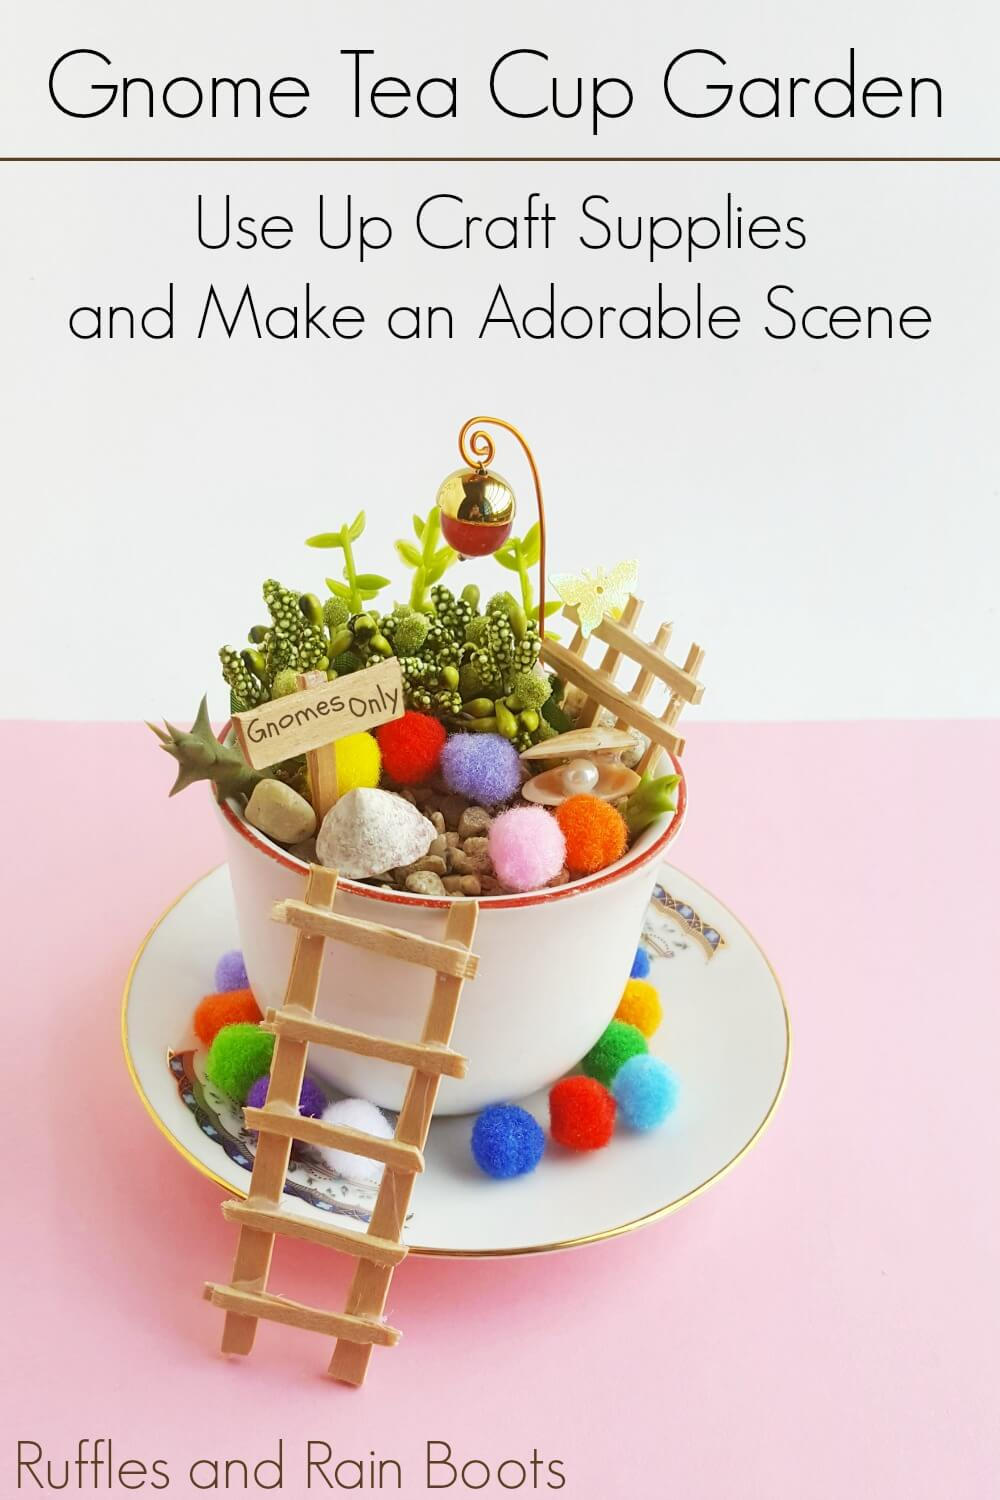 gnome craft for kids Gnome Teacup Garden on a white and pink background with text which reads Gnome Tea Cup Garden use up craft supplies and make an adorable scene